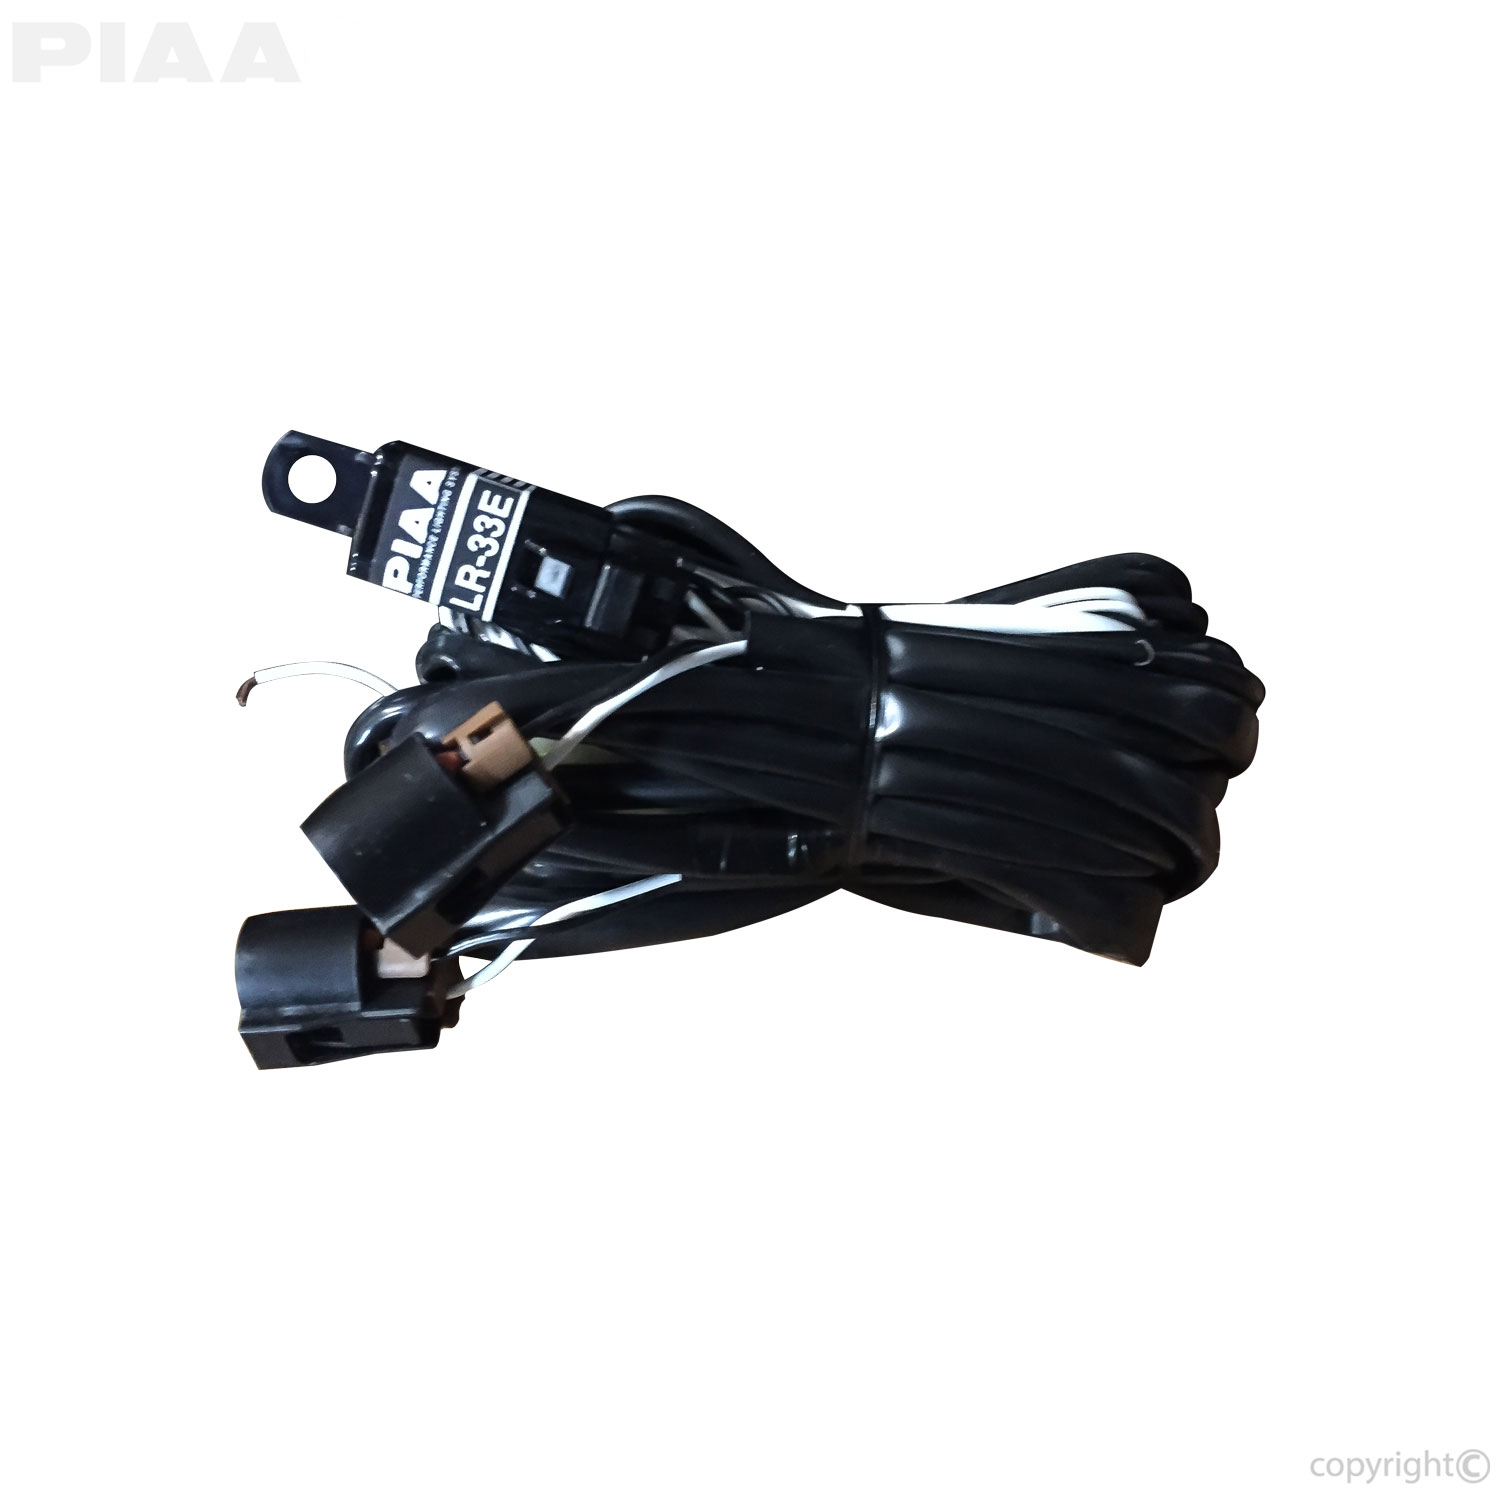 piaa 34087 410 harness hr?bw=600 piaa piaa wiring harness for 410 series driving light kit, for piaa wiring harness at readyjetset.co